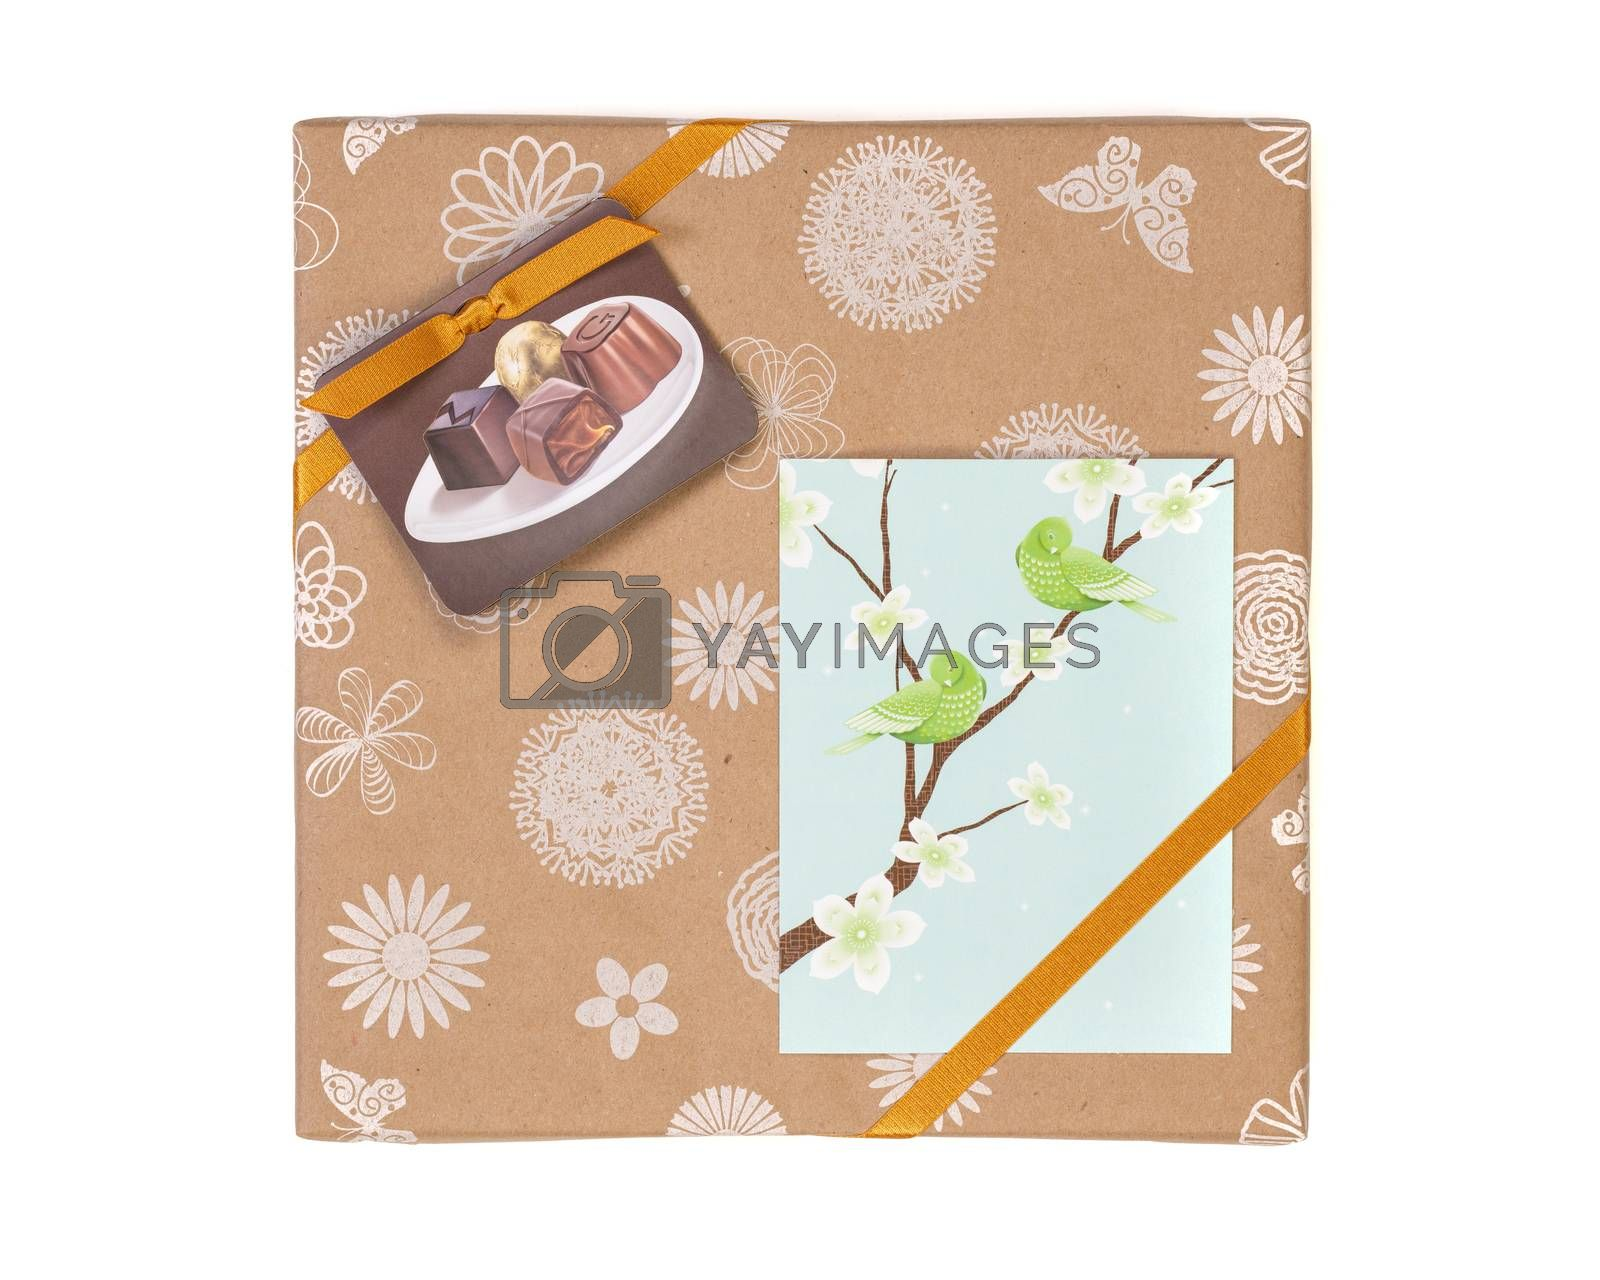 Gift wrapped box with chocolate candies and golden tape on a white background with greeting card.